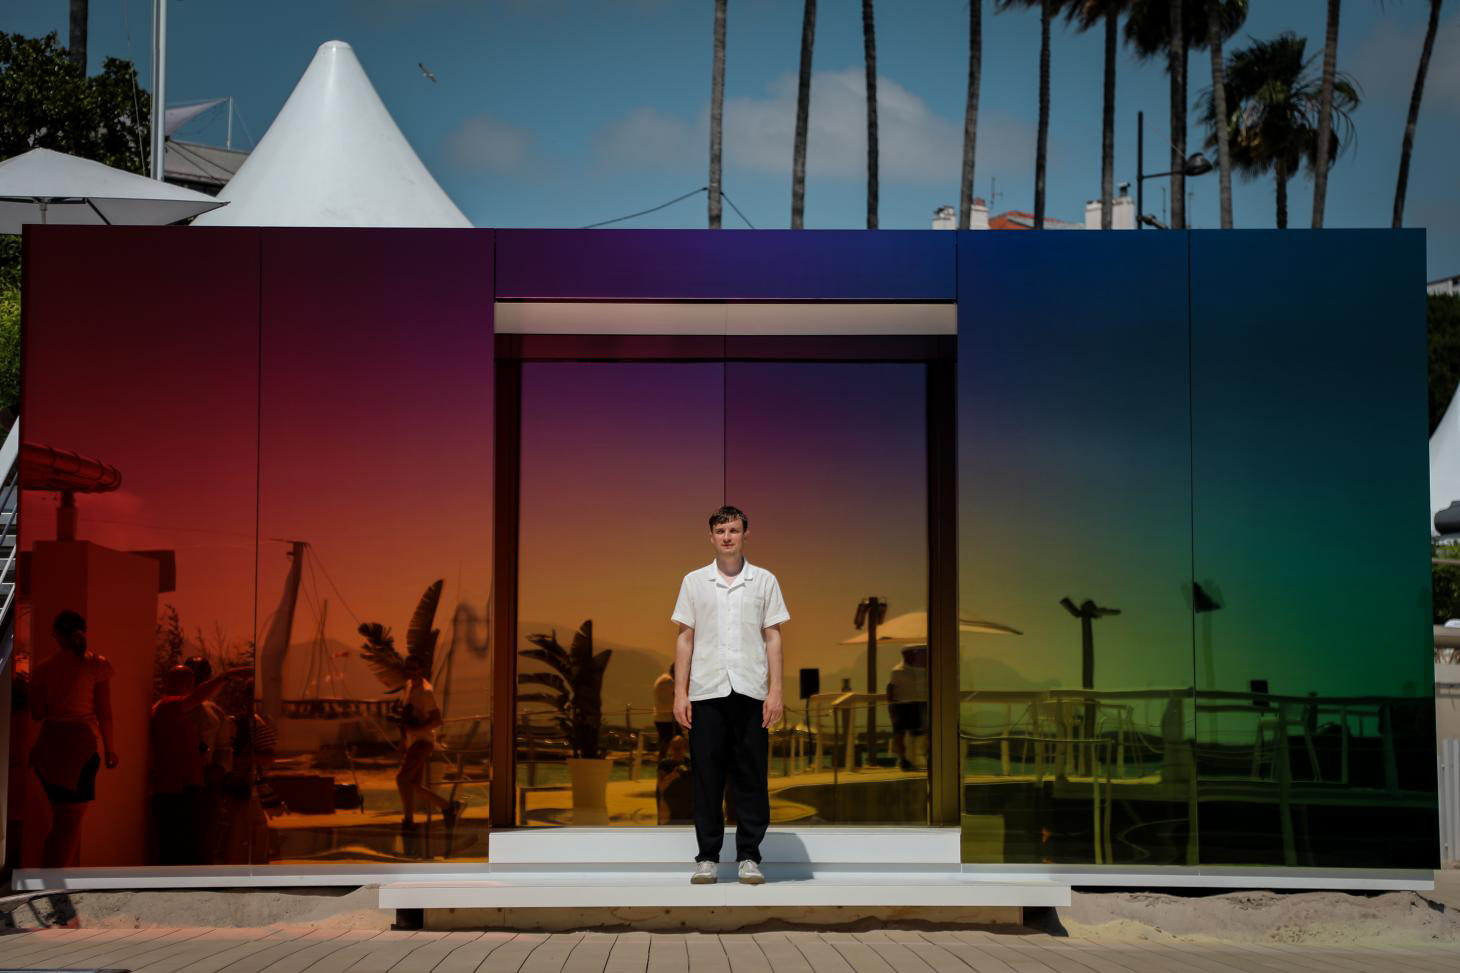 Germans Ermičs designed 'Where the Rainbow Ends' pavilion for Instagram in Cannes